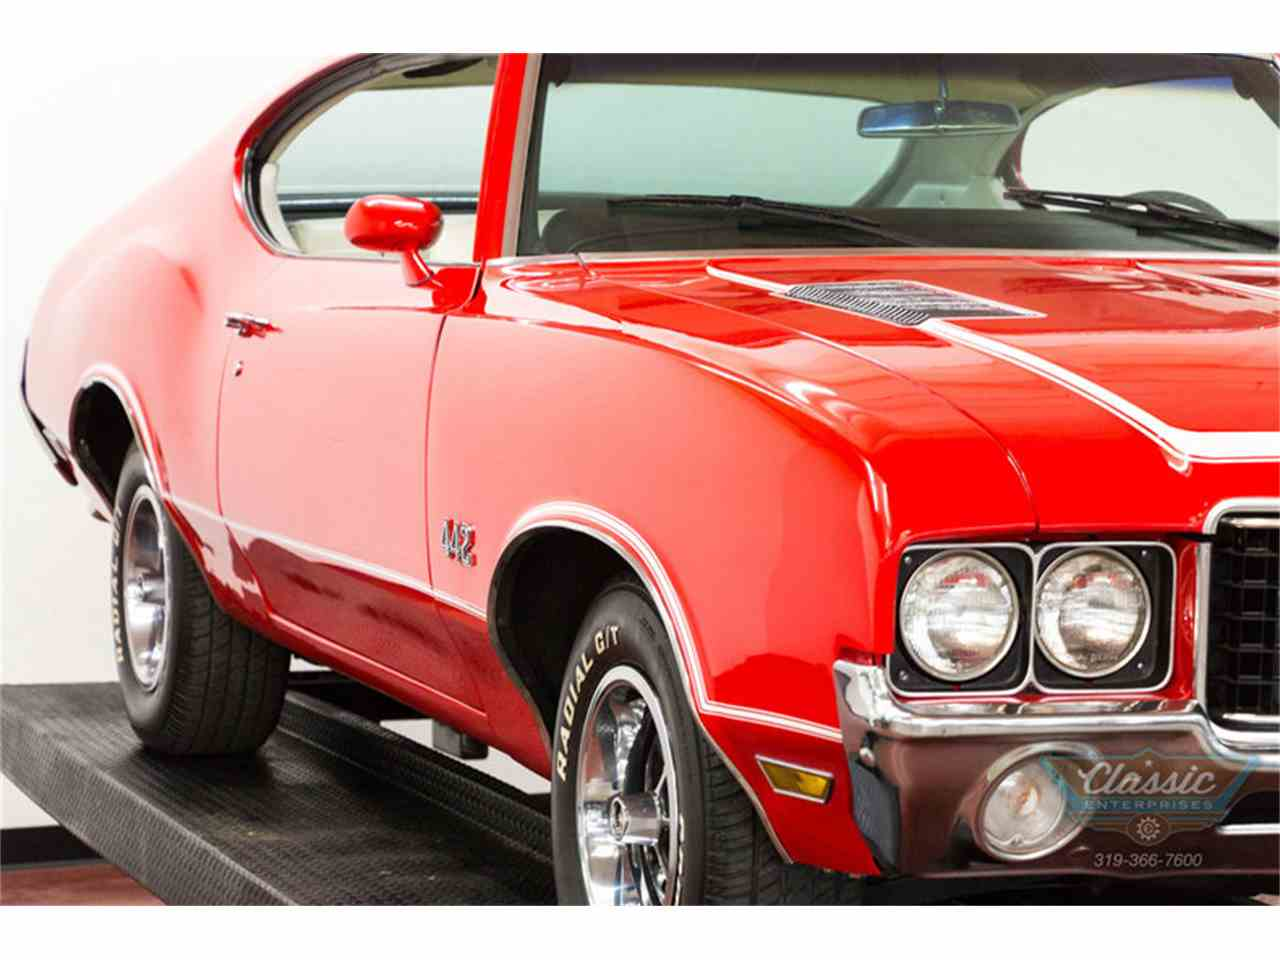 Large Picture of '72 Oldsmobile Cutlass located in Cedar Rapids Iowa - $28,950.00 Offered by Classic Enterprises - HIAM